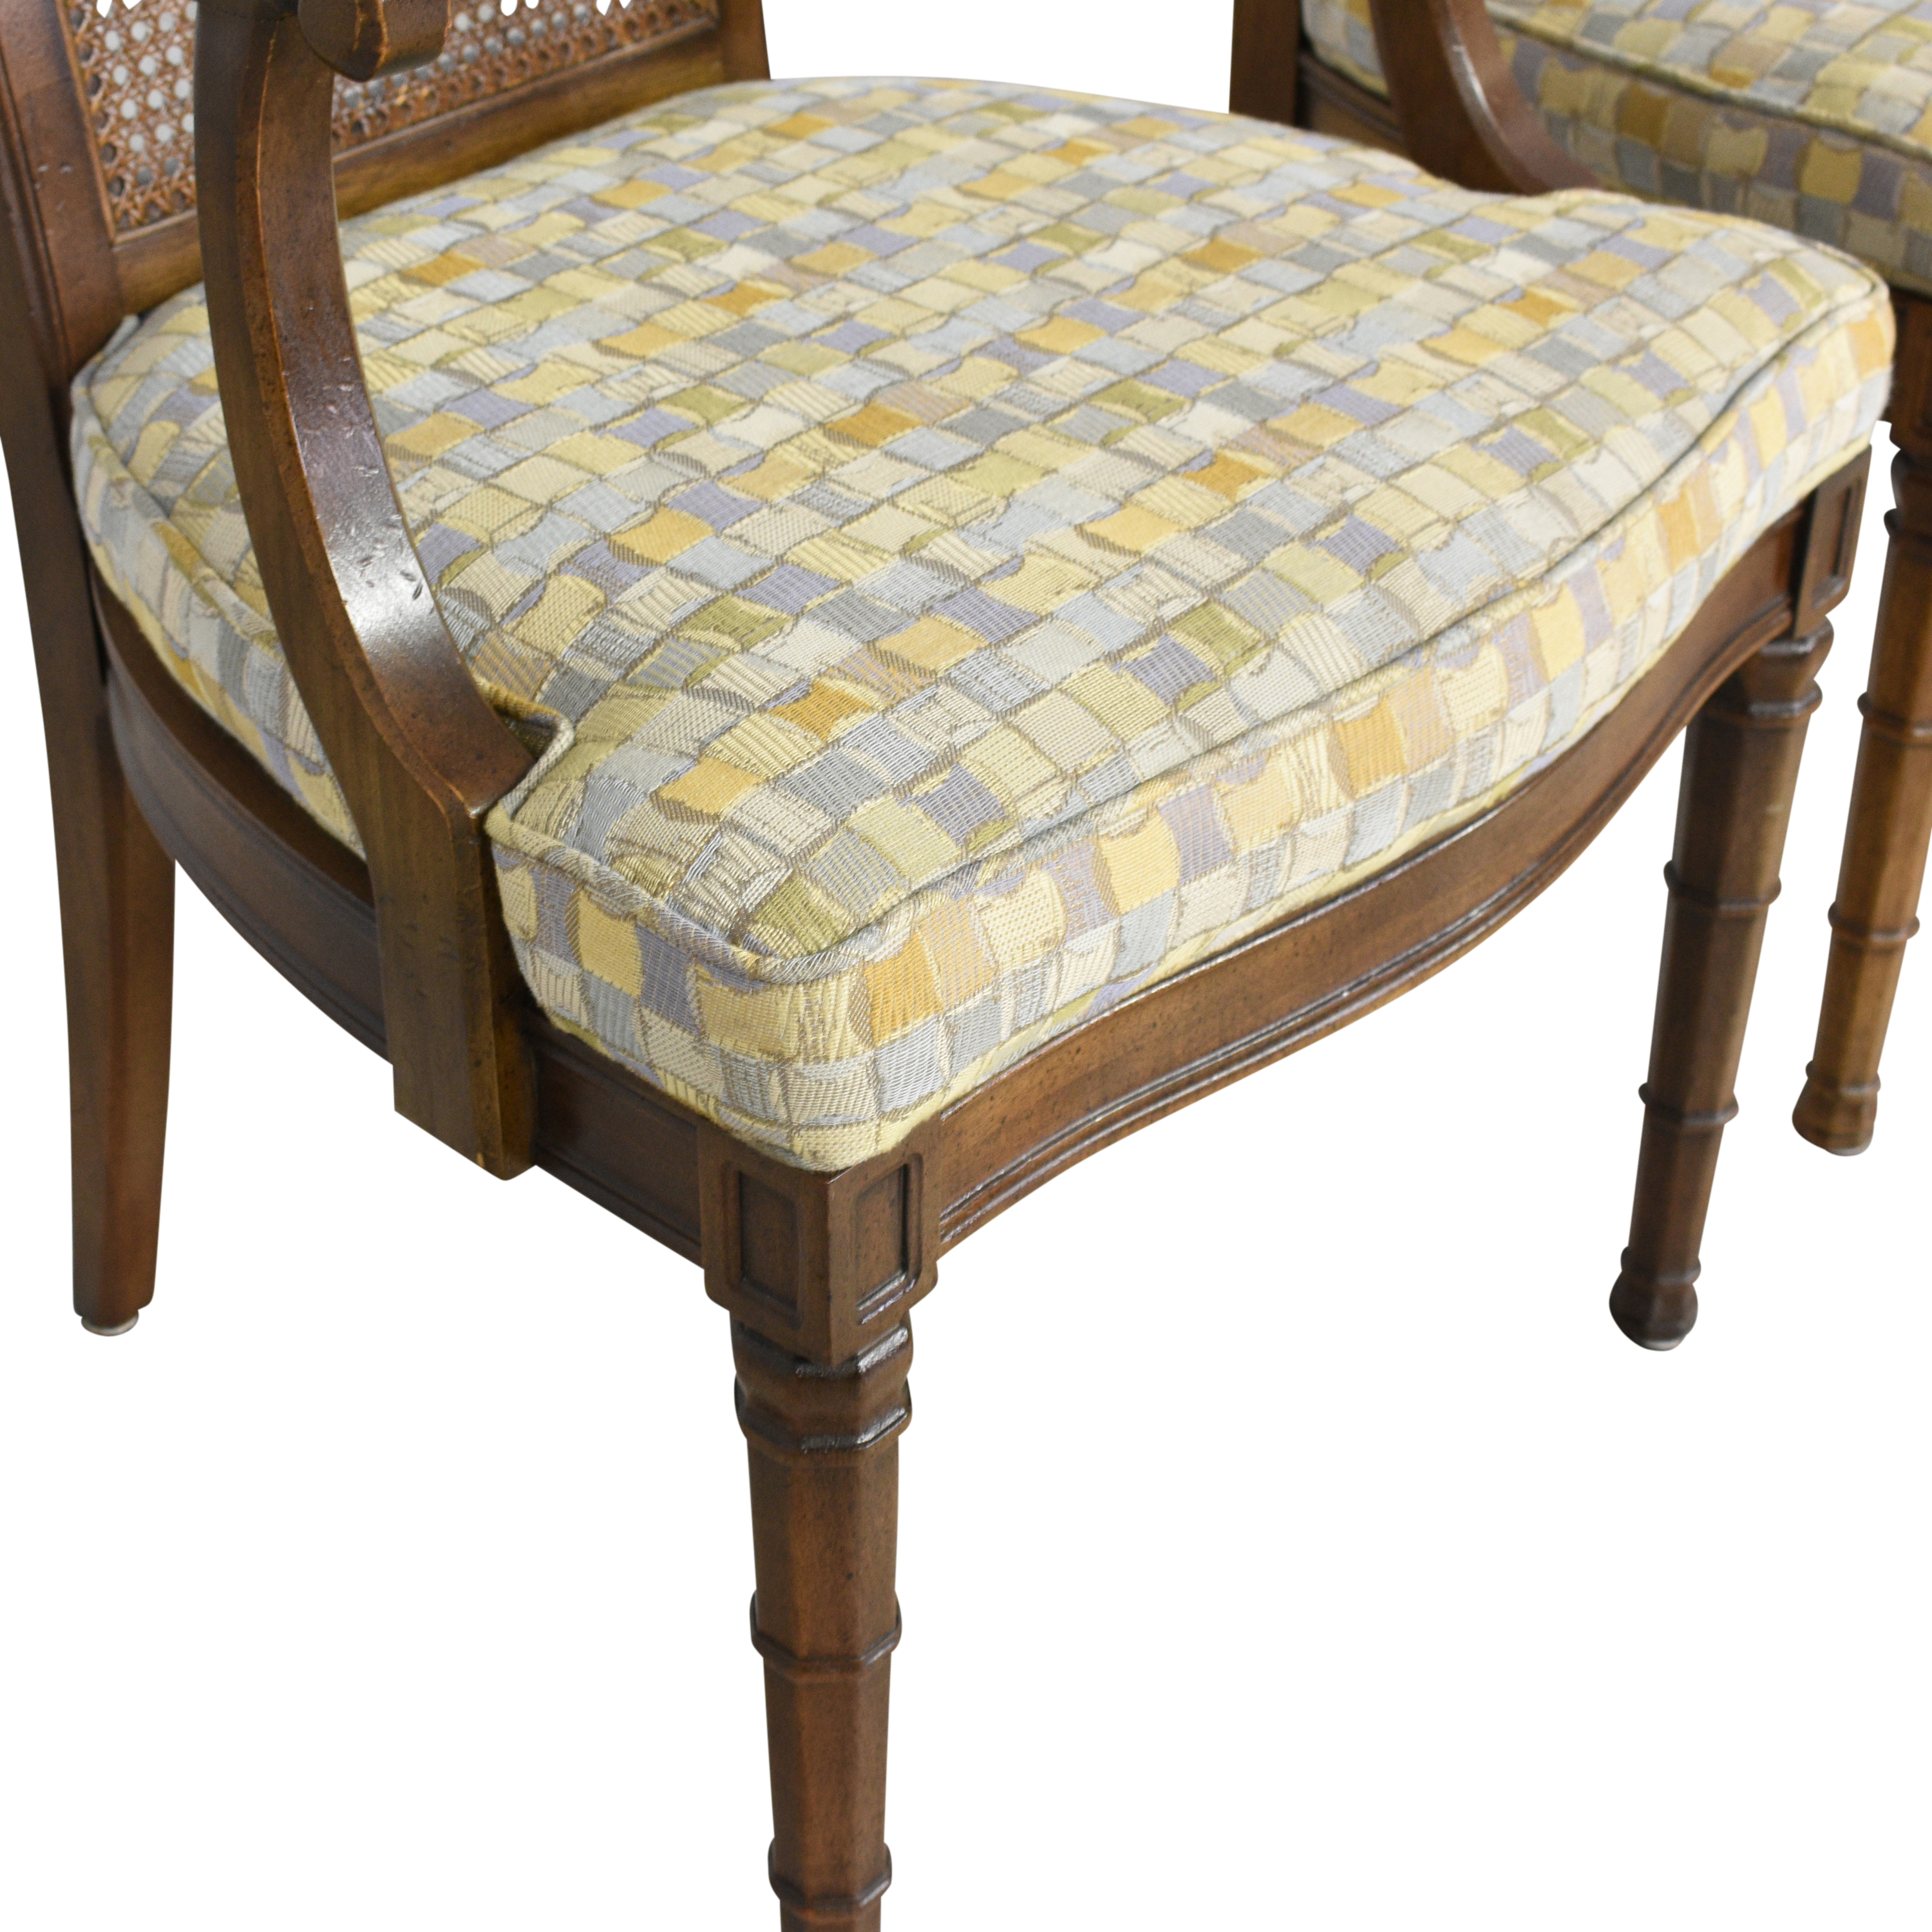 Henredon Cane Back Dining Chairs / Chairs